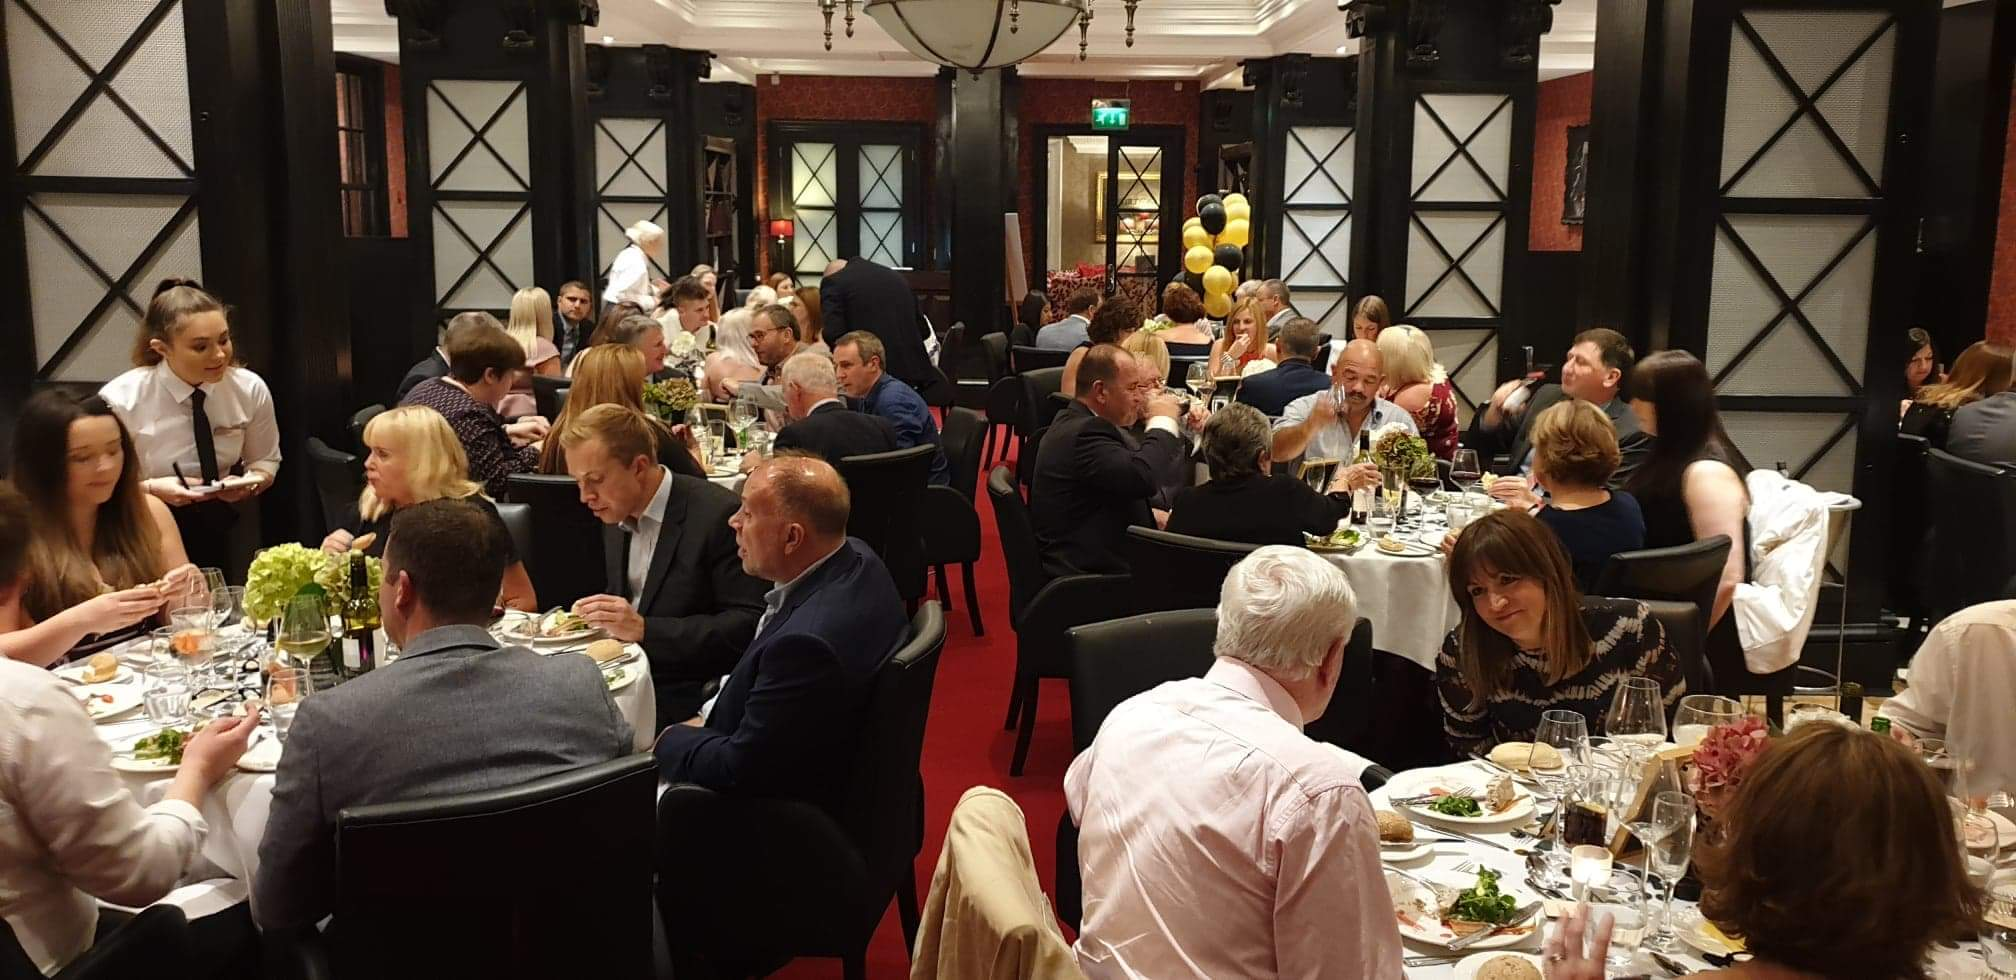 Above: The seminar and Gala Dinner gave Gold Crownies and invited guests (which included Paul and James Taylor of Cardzone) a good opportunity to network and share ideas.